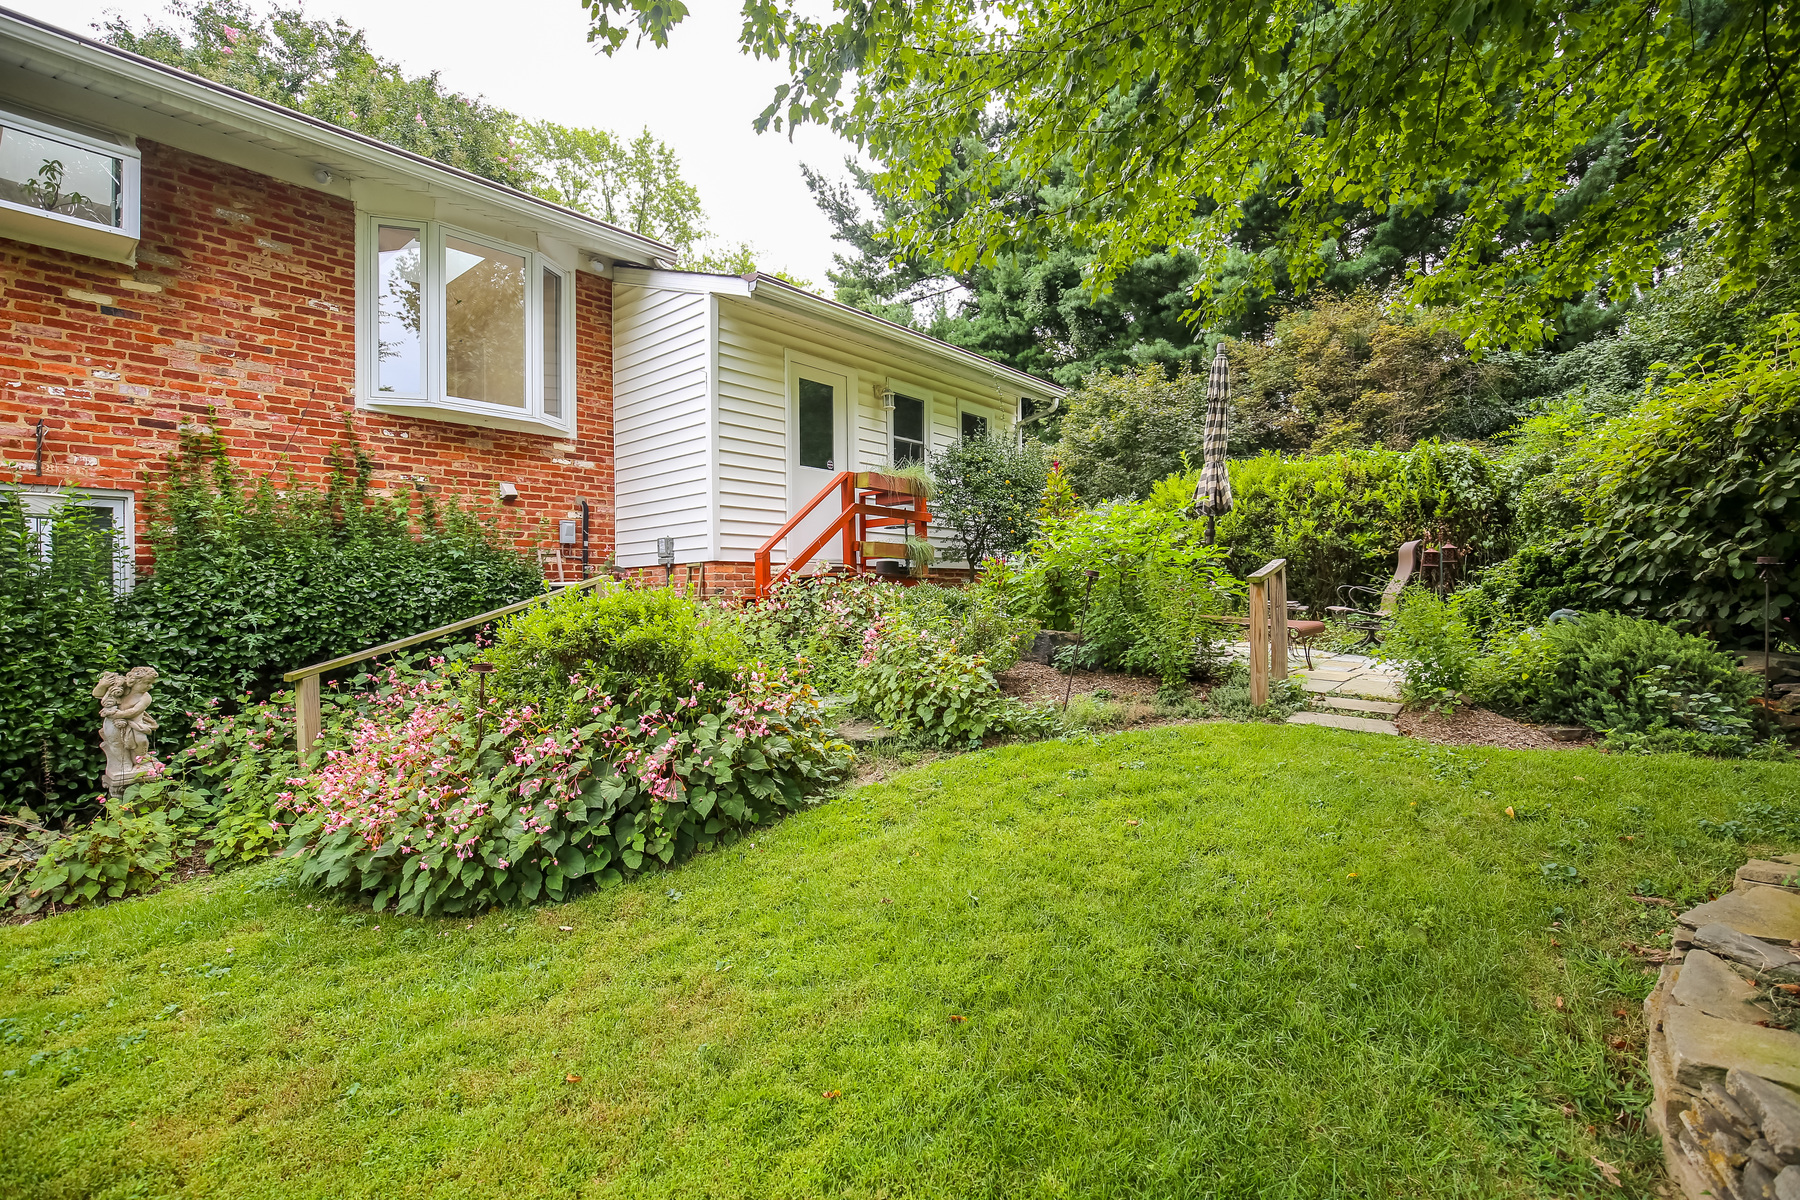 Additional photo for property listing at 2028 Dexter Drive, Falls Church  弗尔斯切赫, 弗吉尼亚州 22043 美国